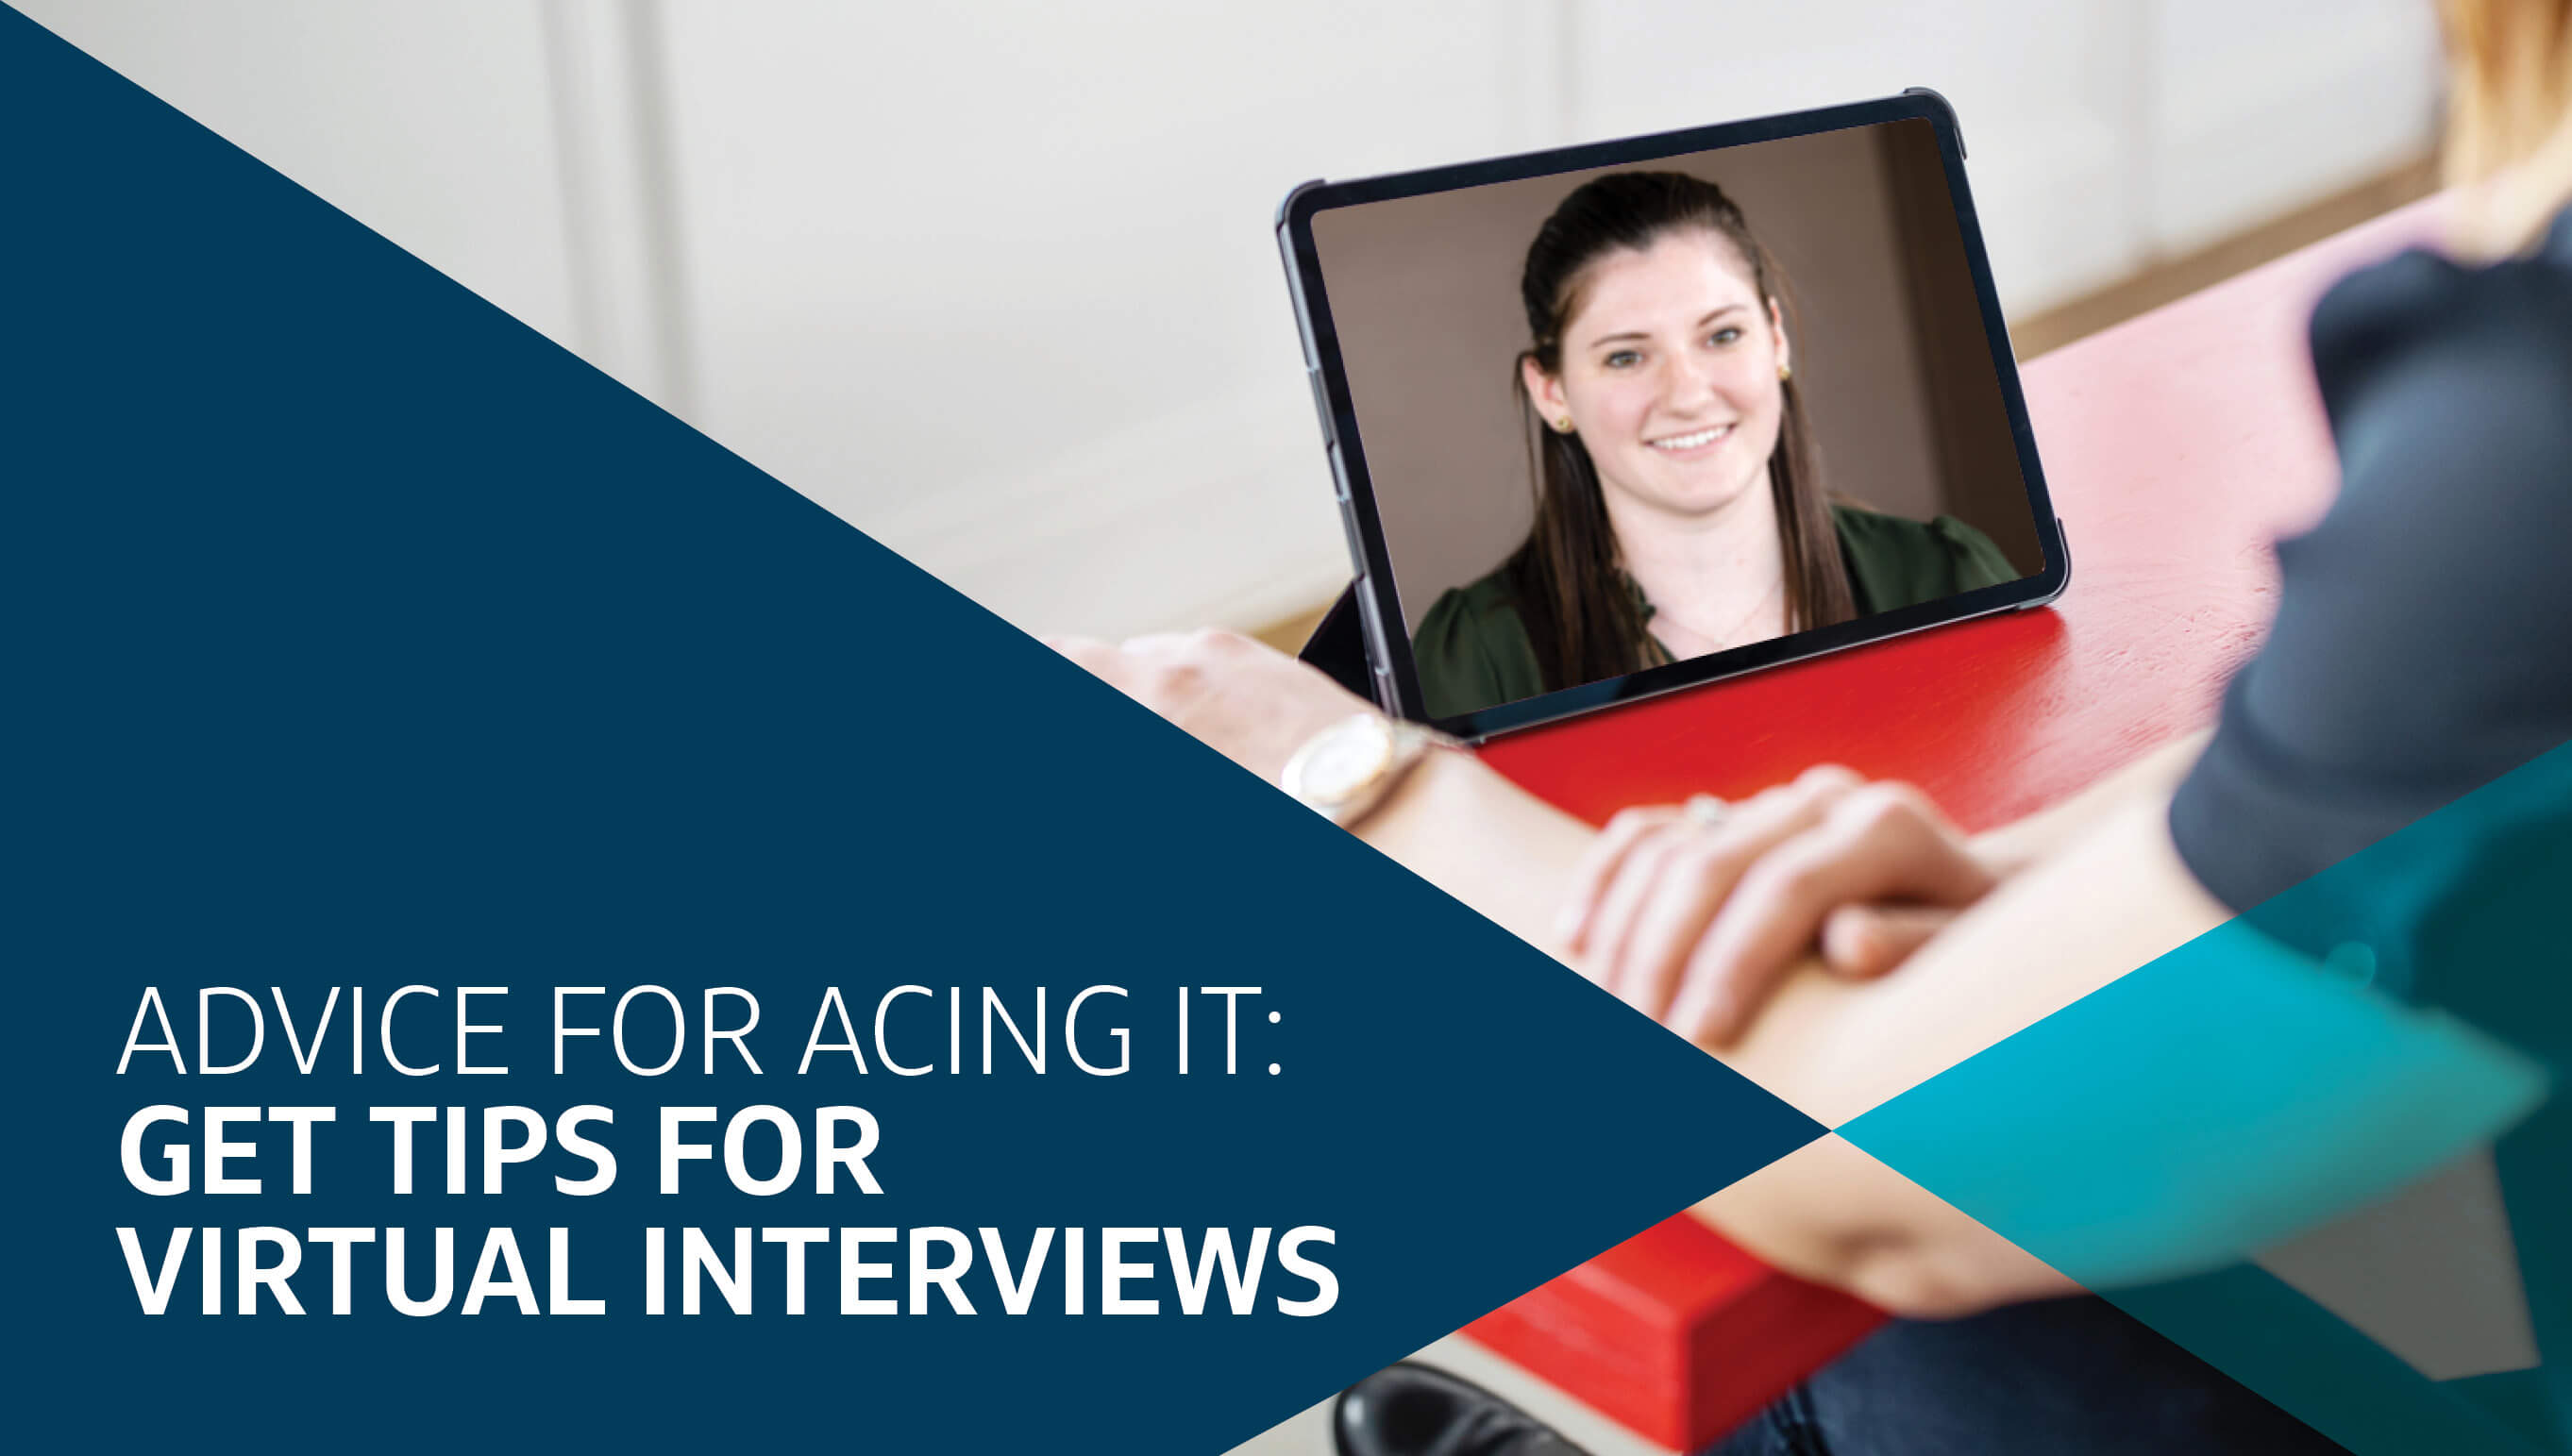 Advice for acing it: Get tips for virtual interviews